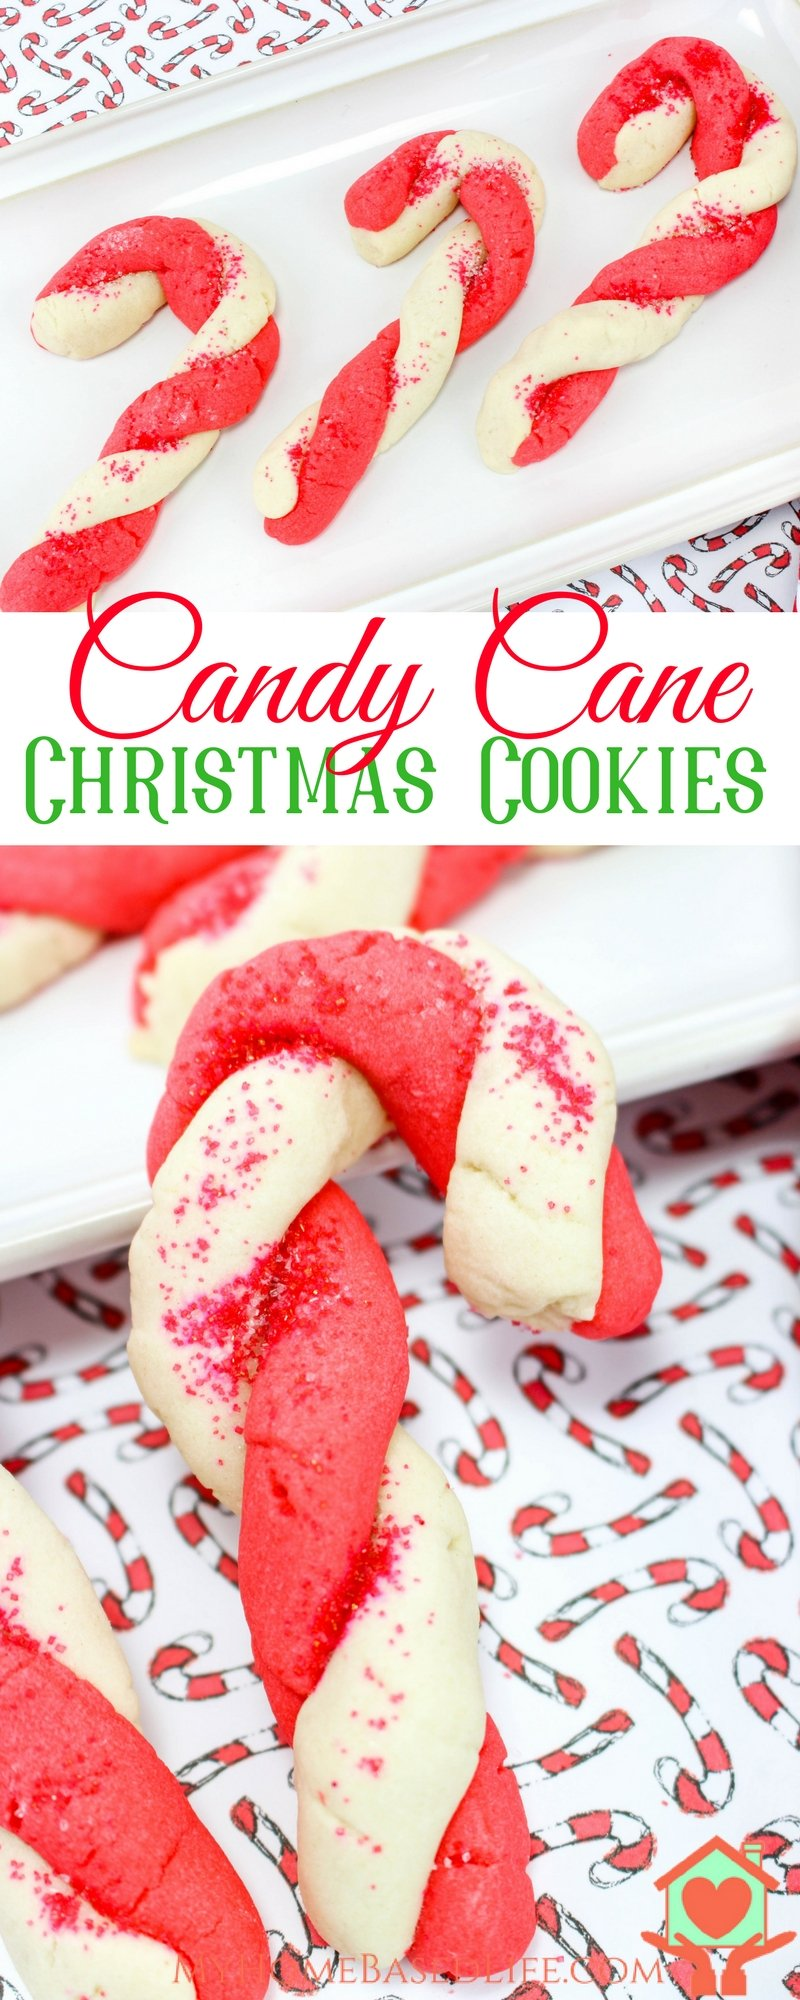 Candy Cane Sugar Cookies | Christmas Sugar Cookies | Christmas Cookies | Peppermint Cookies | Peppermint Dessert Recipe | #christmascookies #cookiesforsanta #peppermintdessert